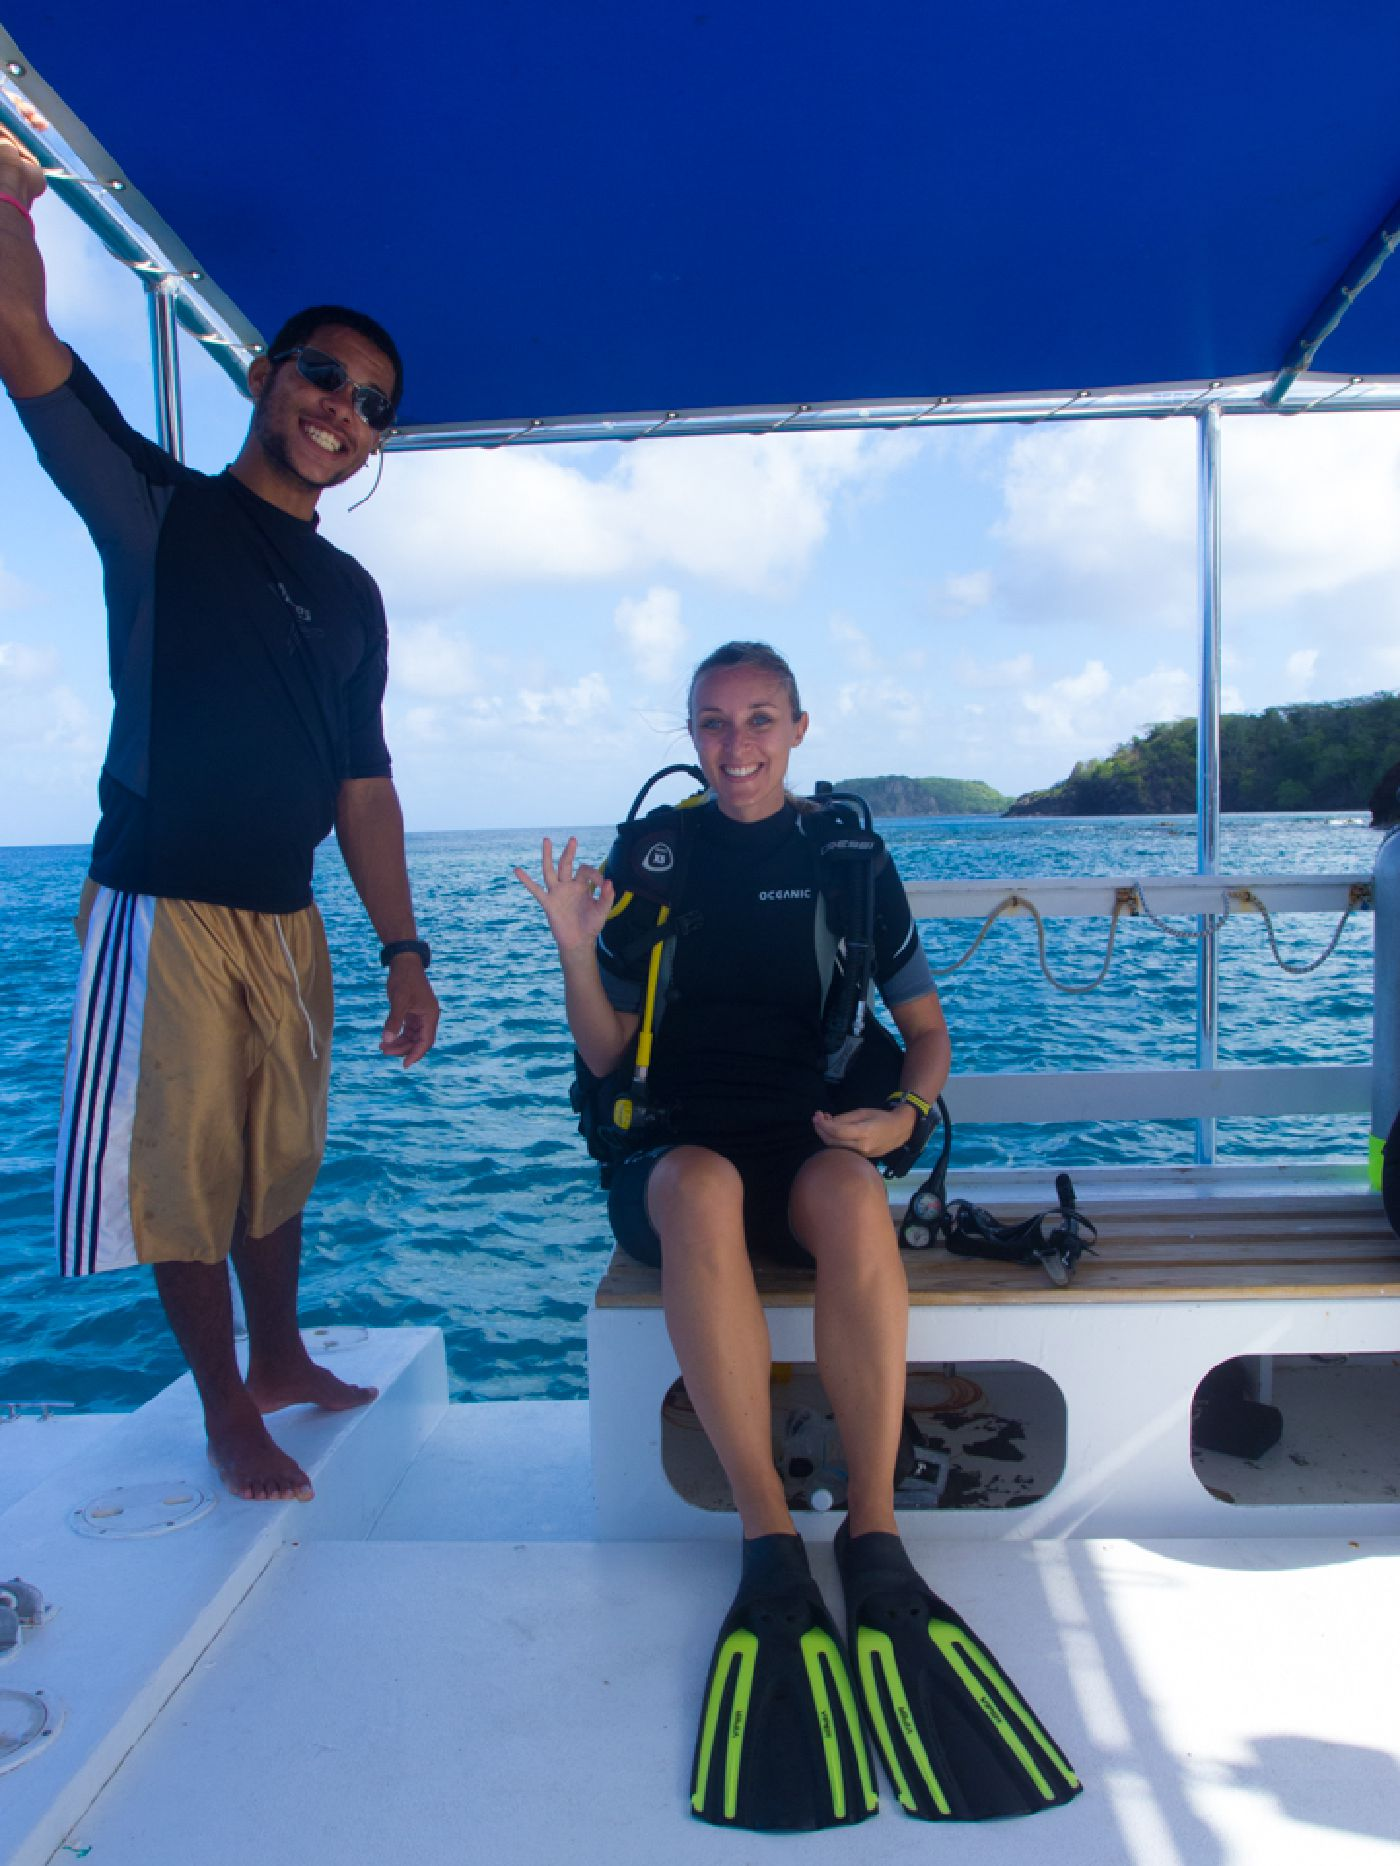 Deefer Diving Carriacou Guided Scuba Diving Prices